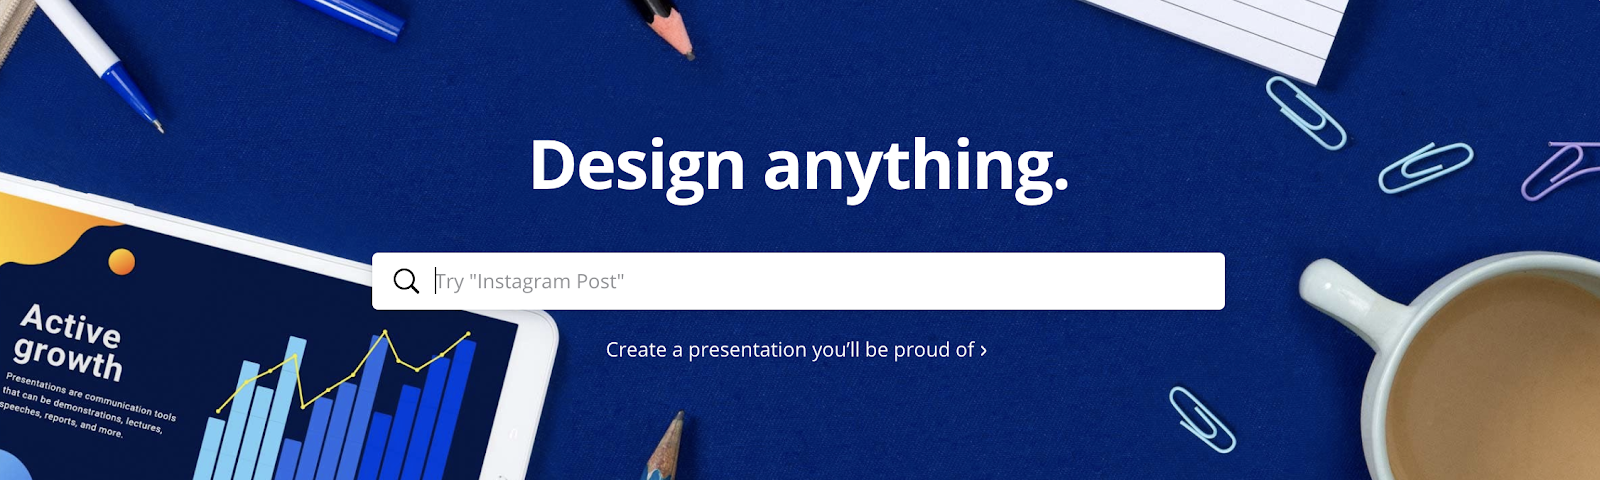 Canva for designing assets for blogs